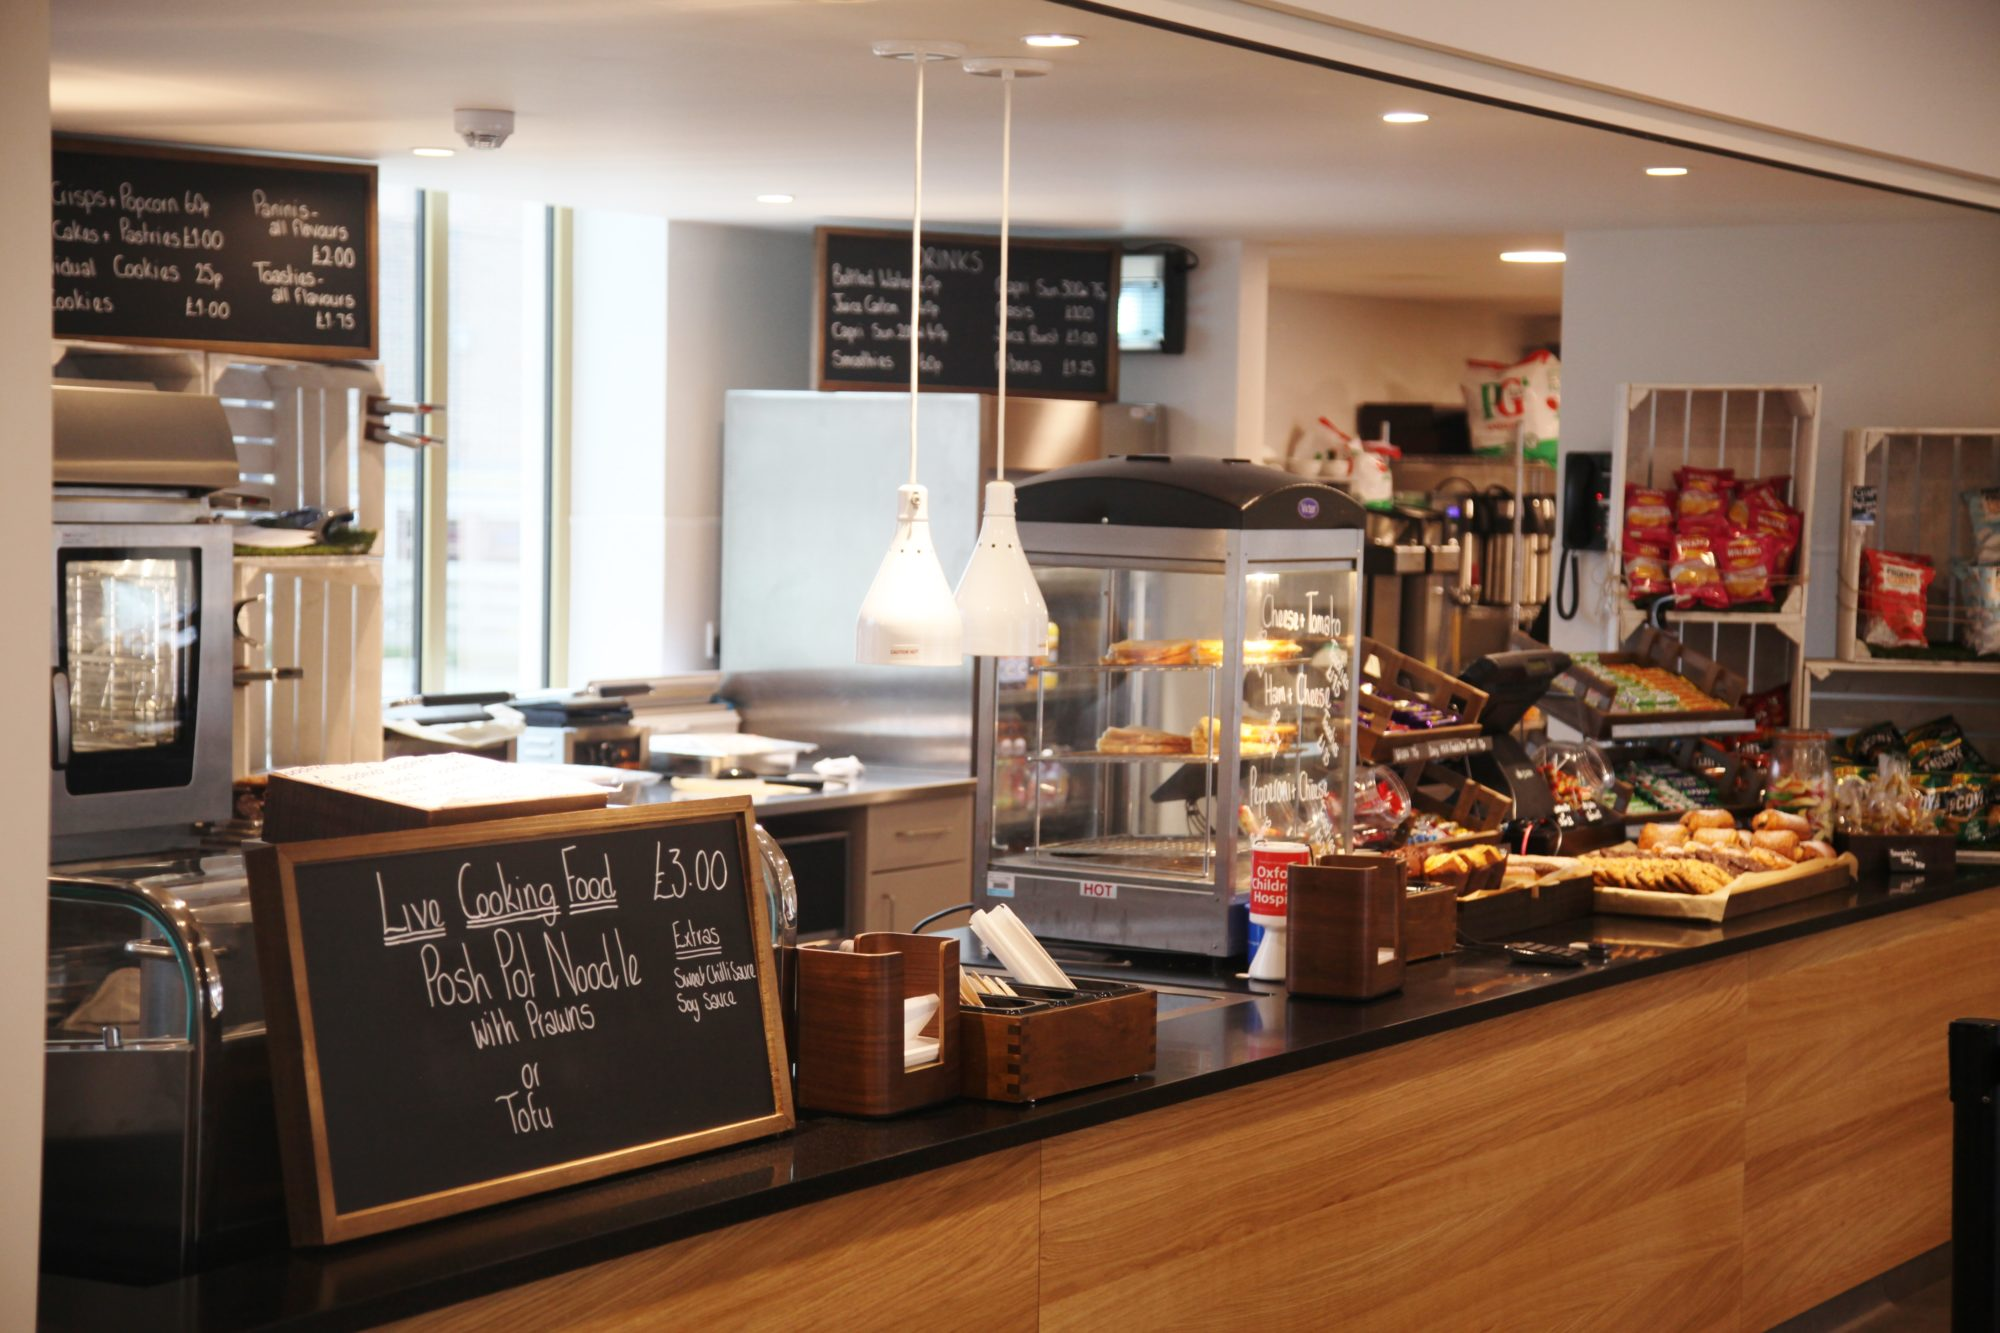 Fresh food in the cafe at Magdalen College School